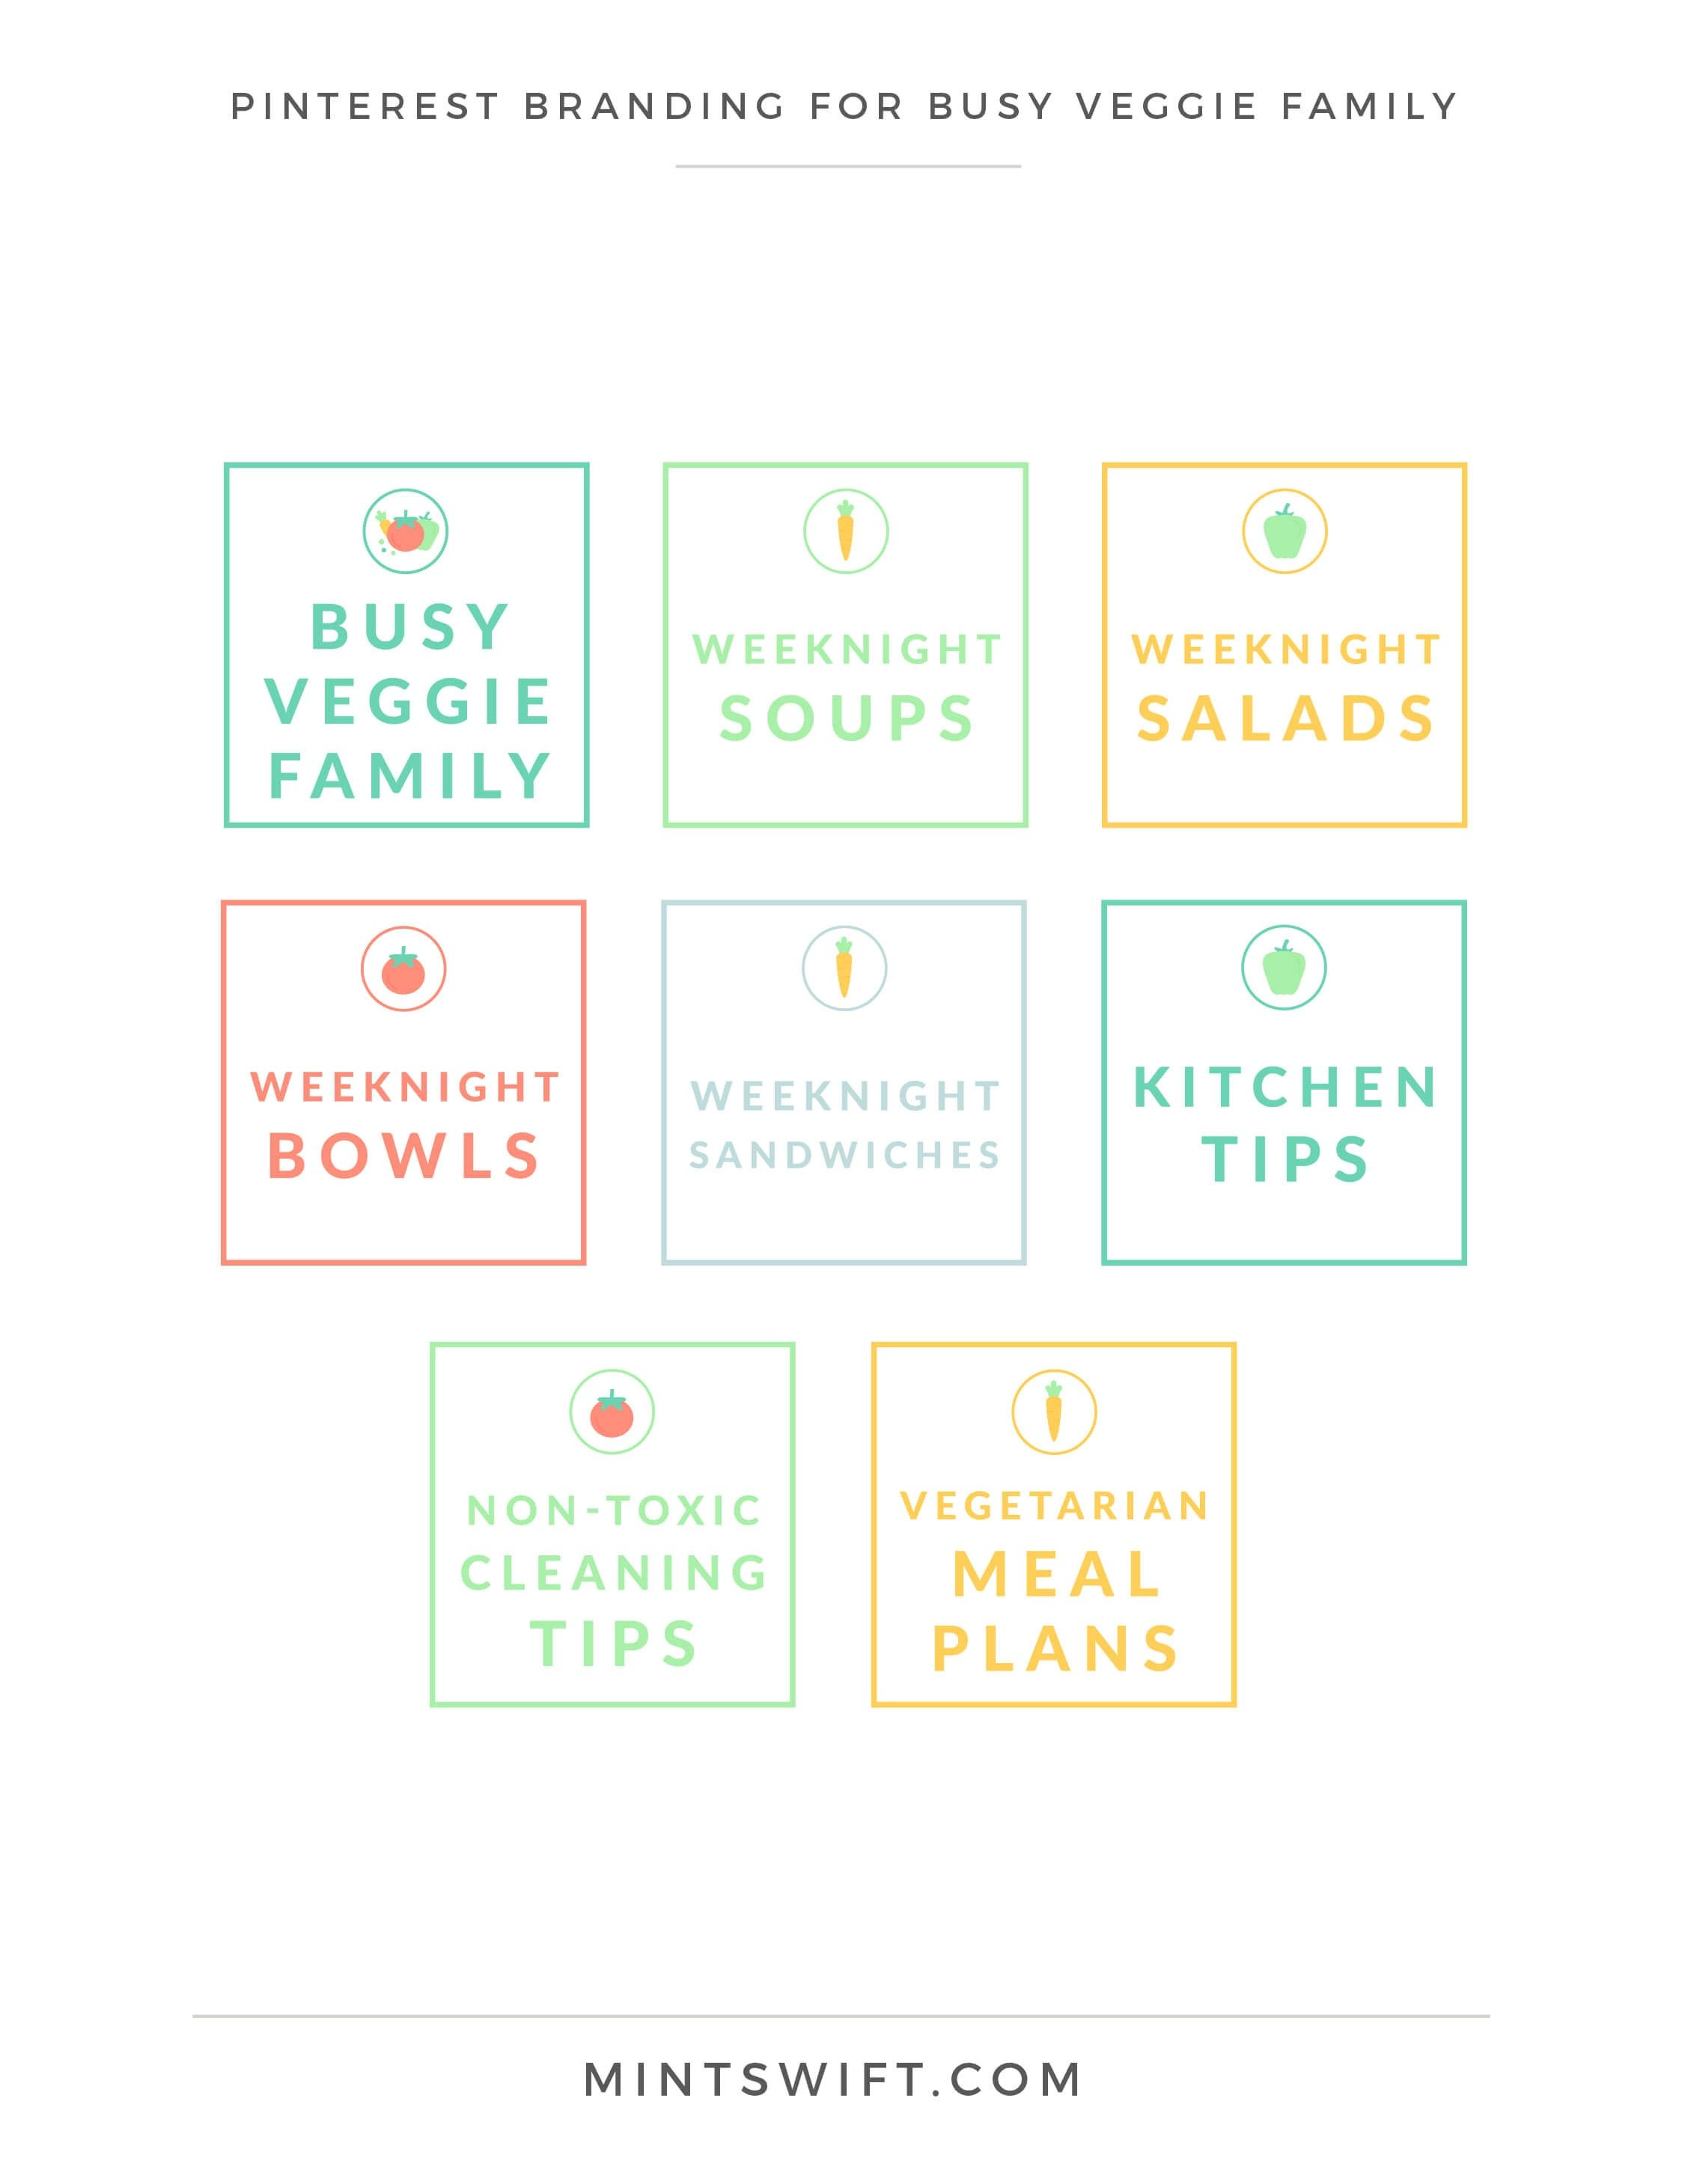 Busy Veggie Family - Pinterest Branding - Brand & Website Design Package - MintSwift